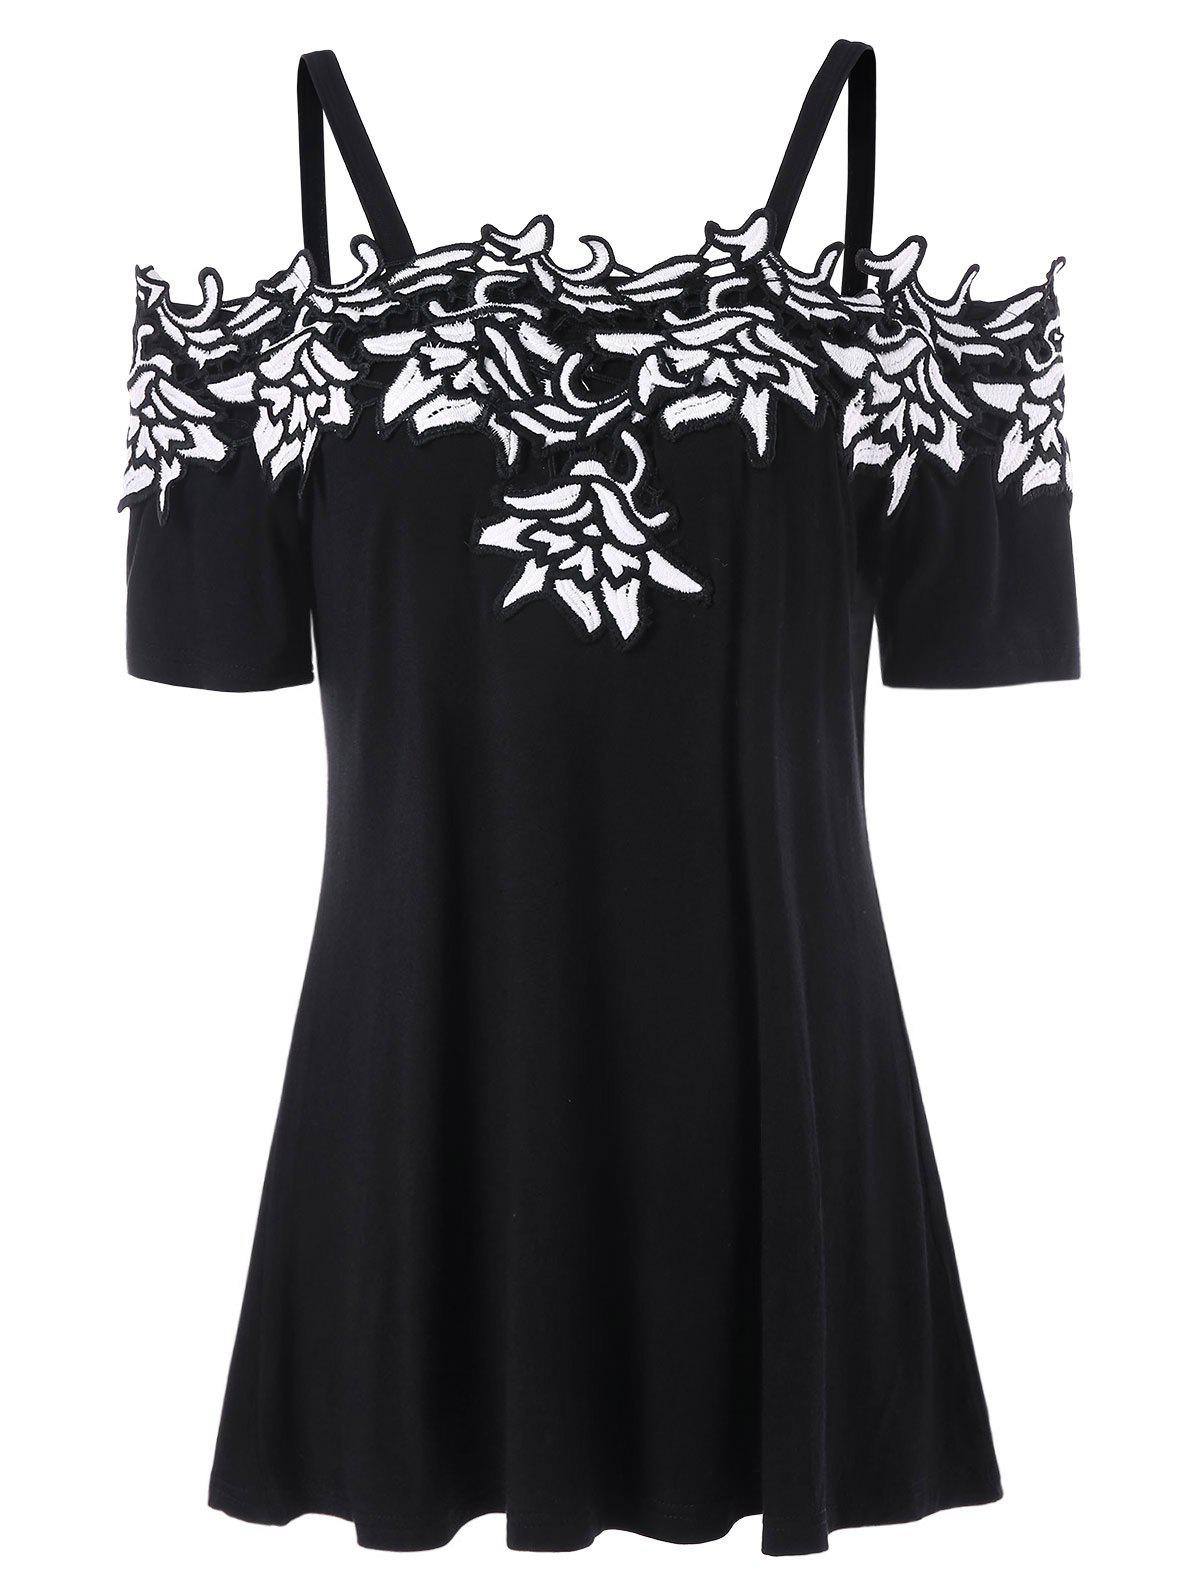 Shop Cold Shoulder Contrast Lace Applique T-shirt